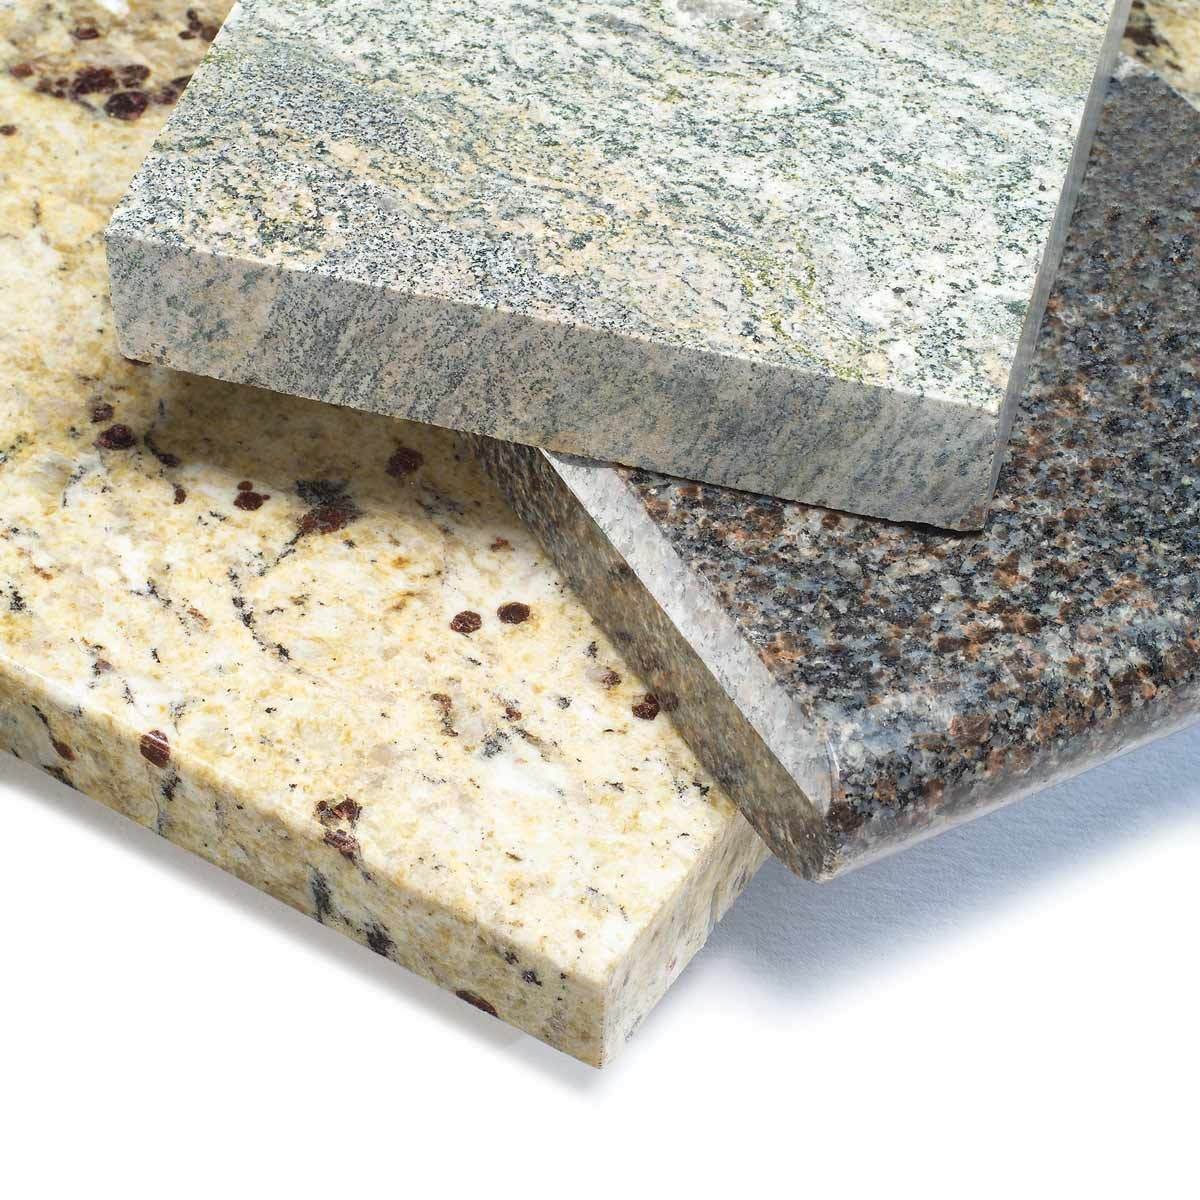 Granite Countertops Heat Damage New Countertop Options Pros And Cons Family Handyman The